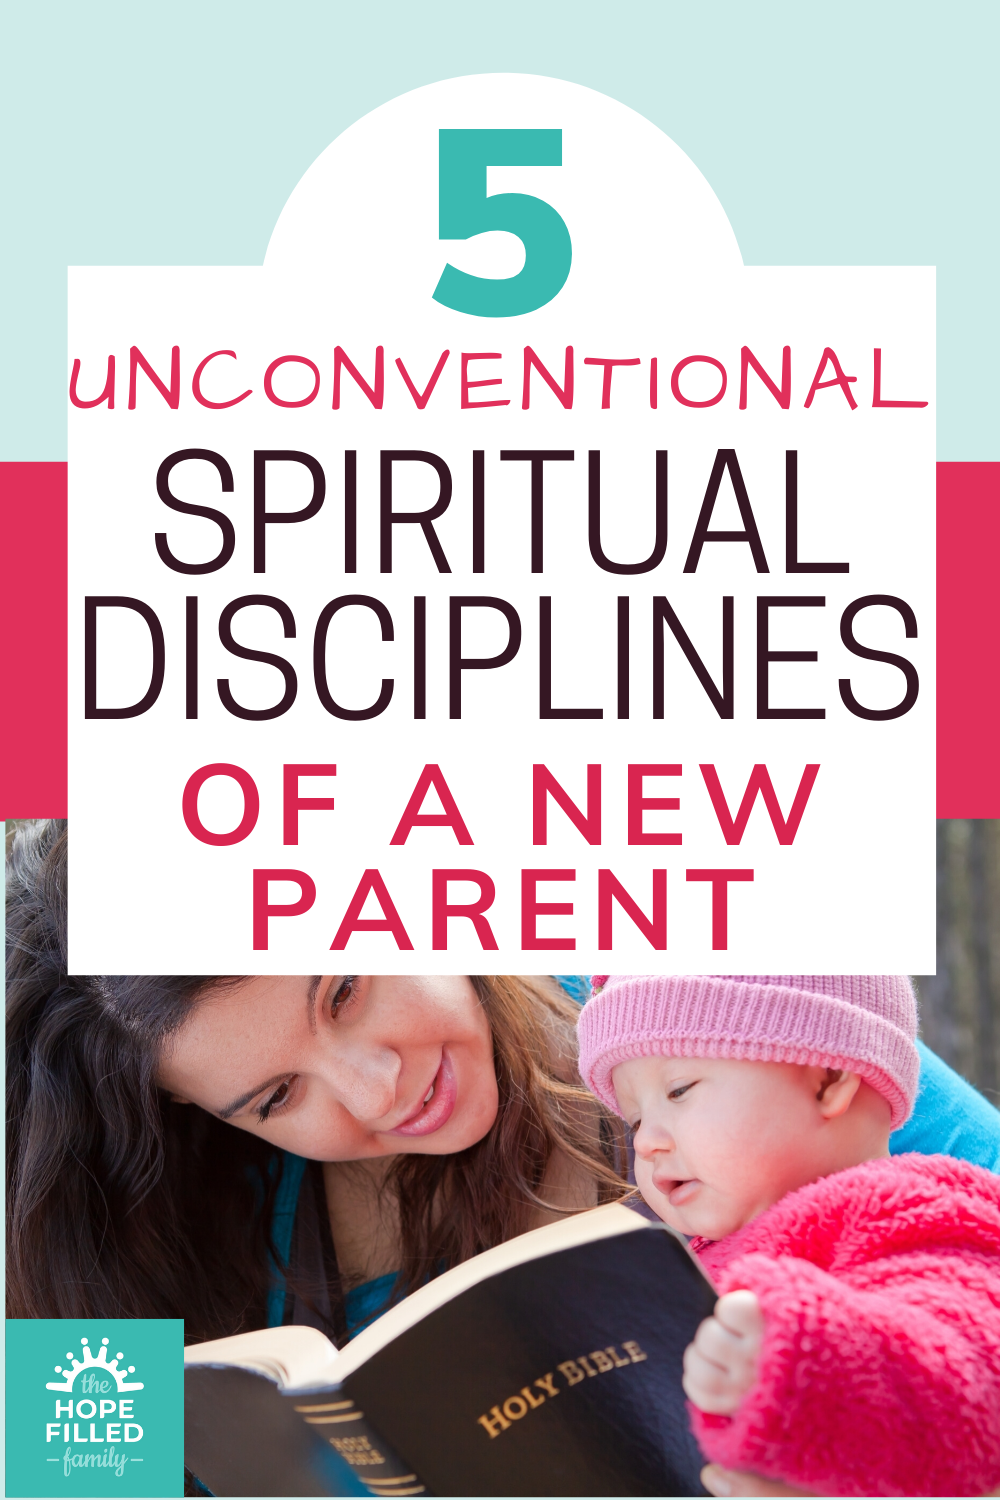 How do I keep my faith alive with small children? How do I commit to spiritual disciplines when I'm a new parent?